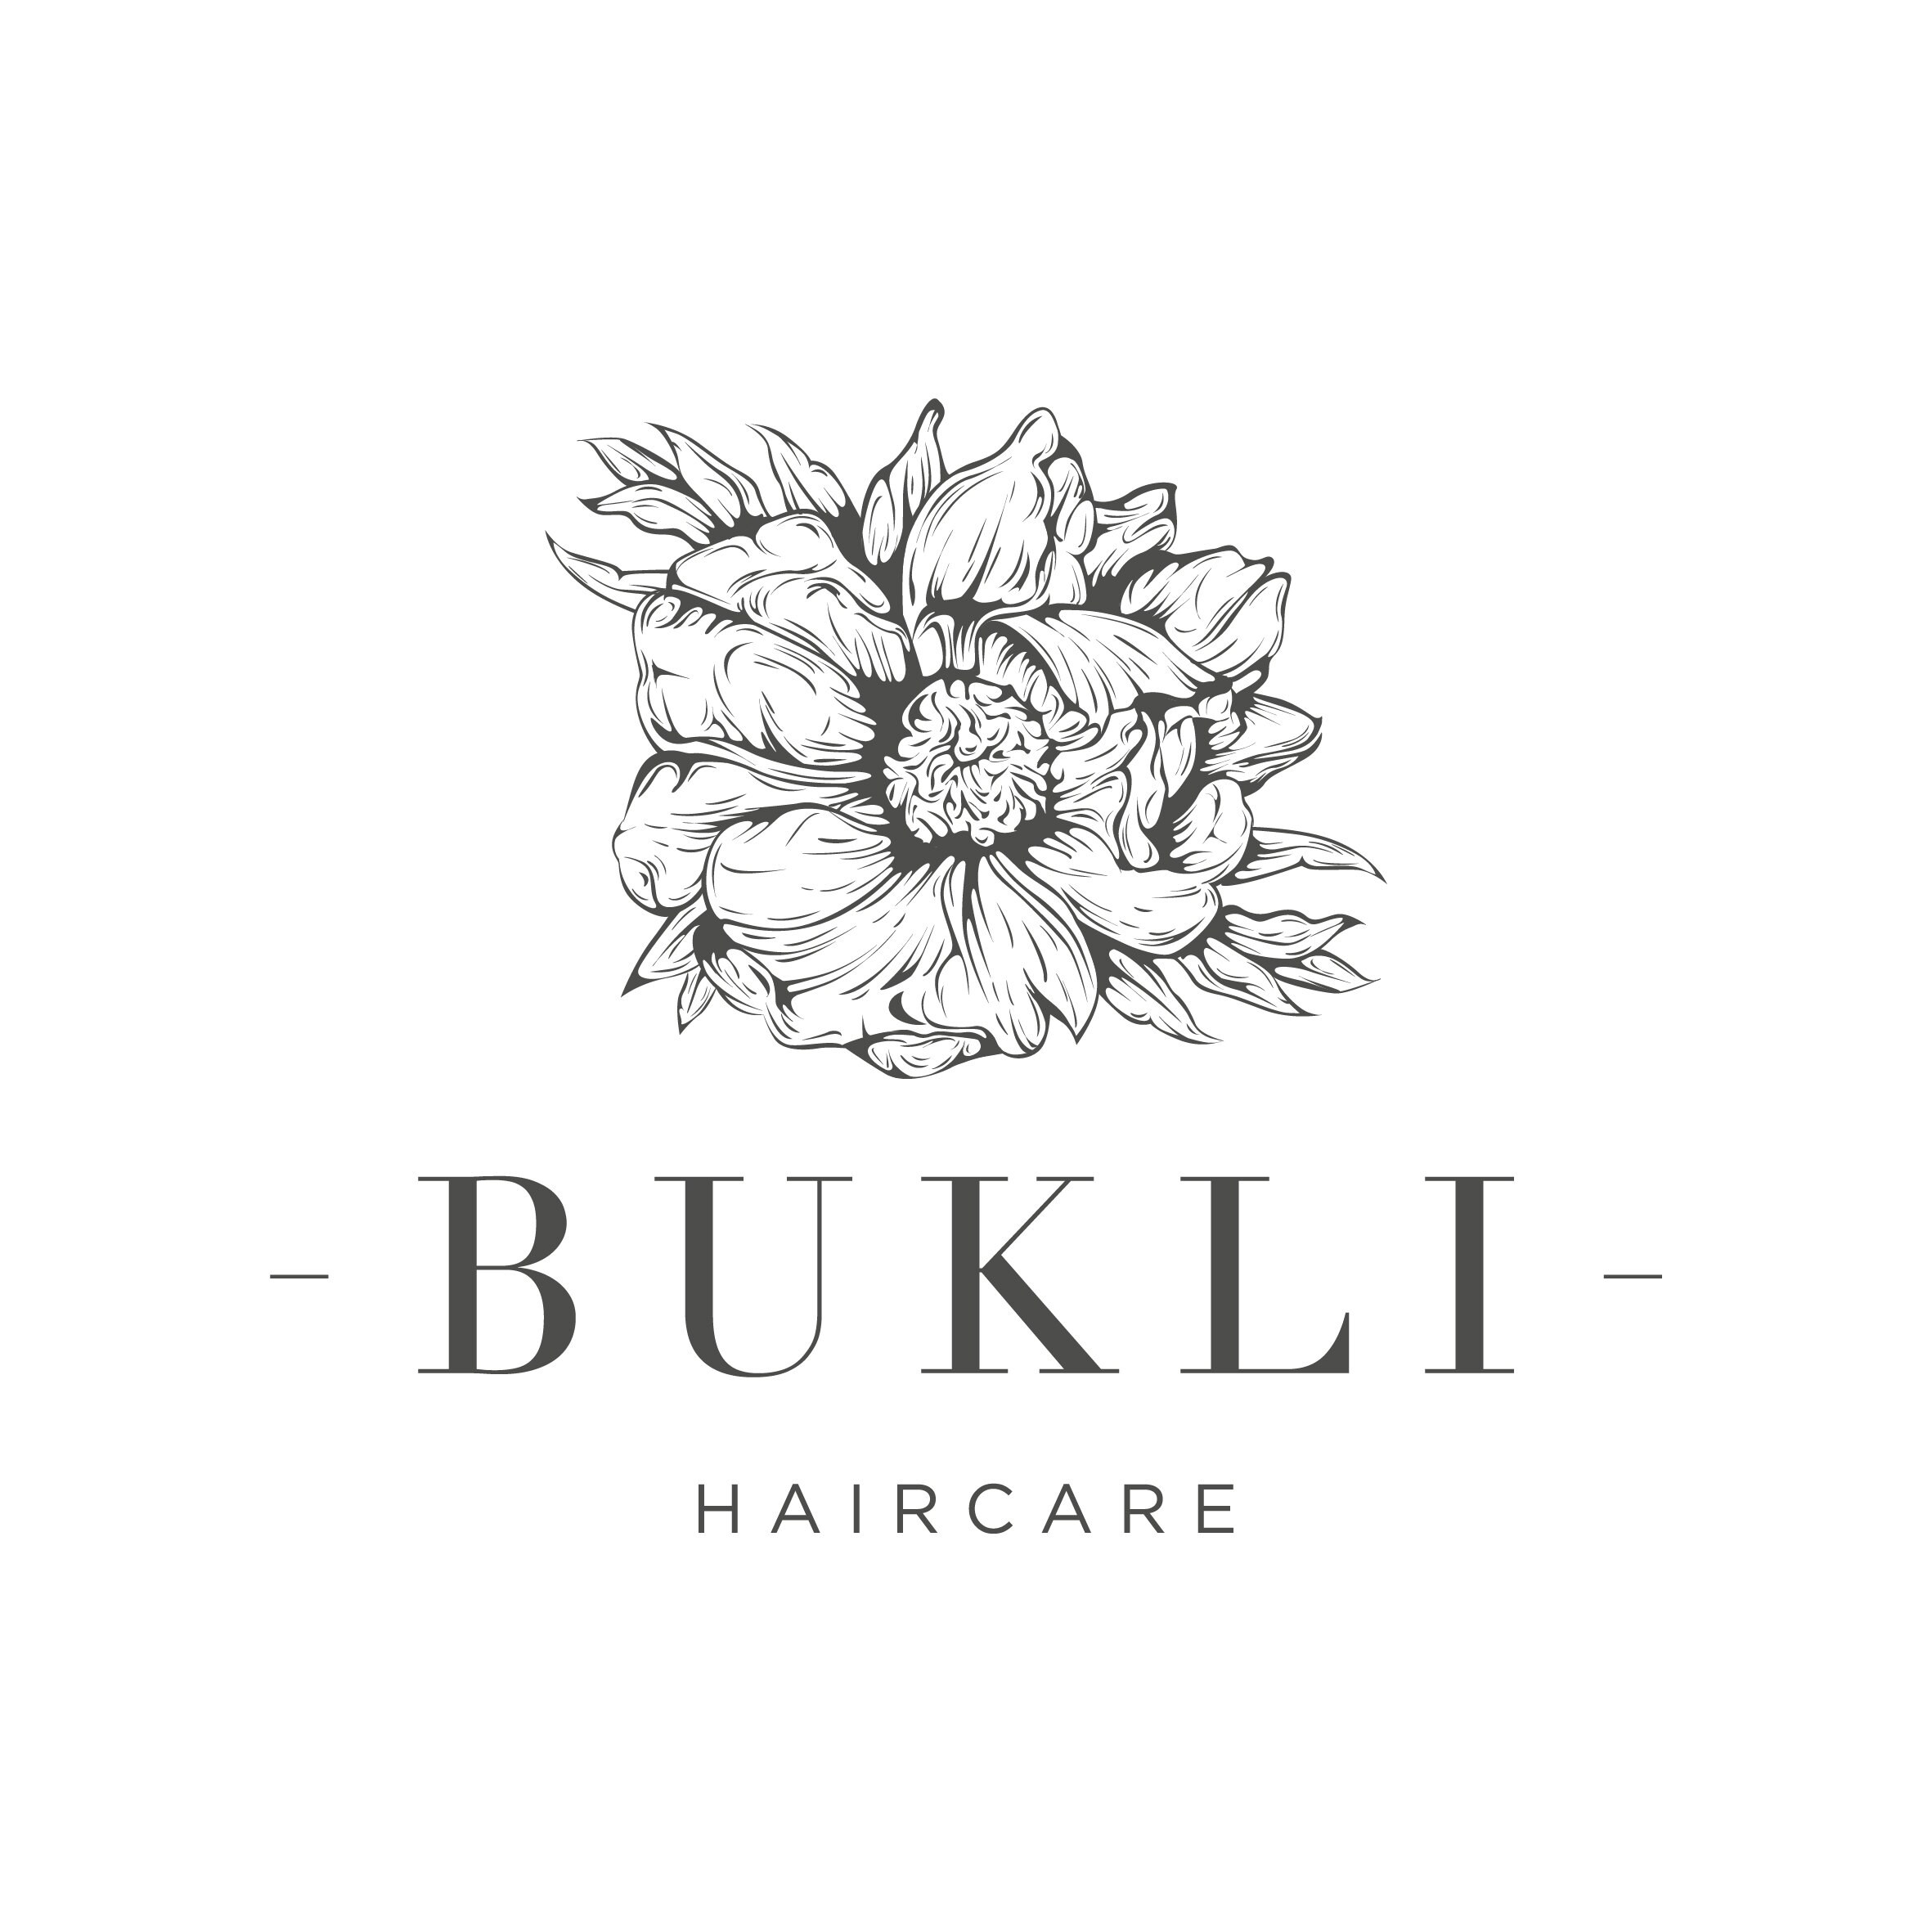 Bukli is the creation of a unique image